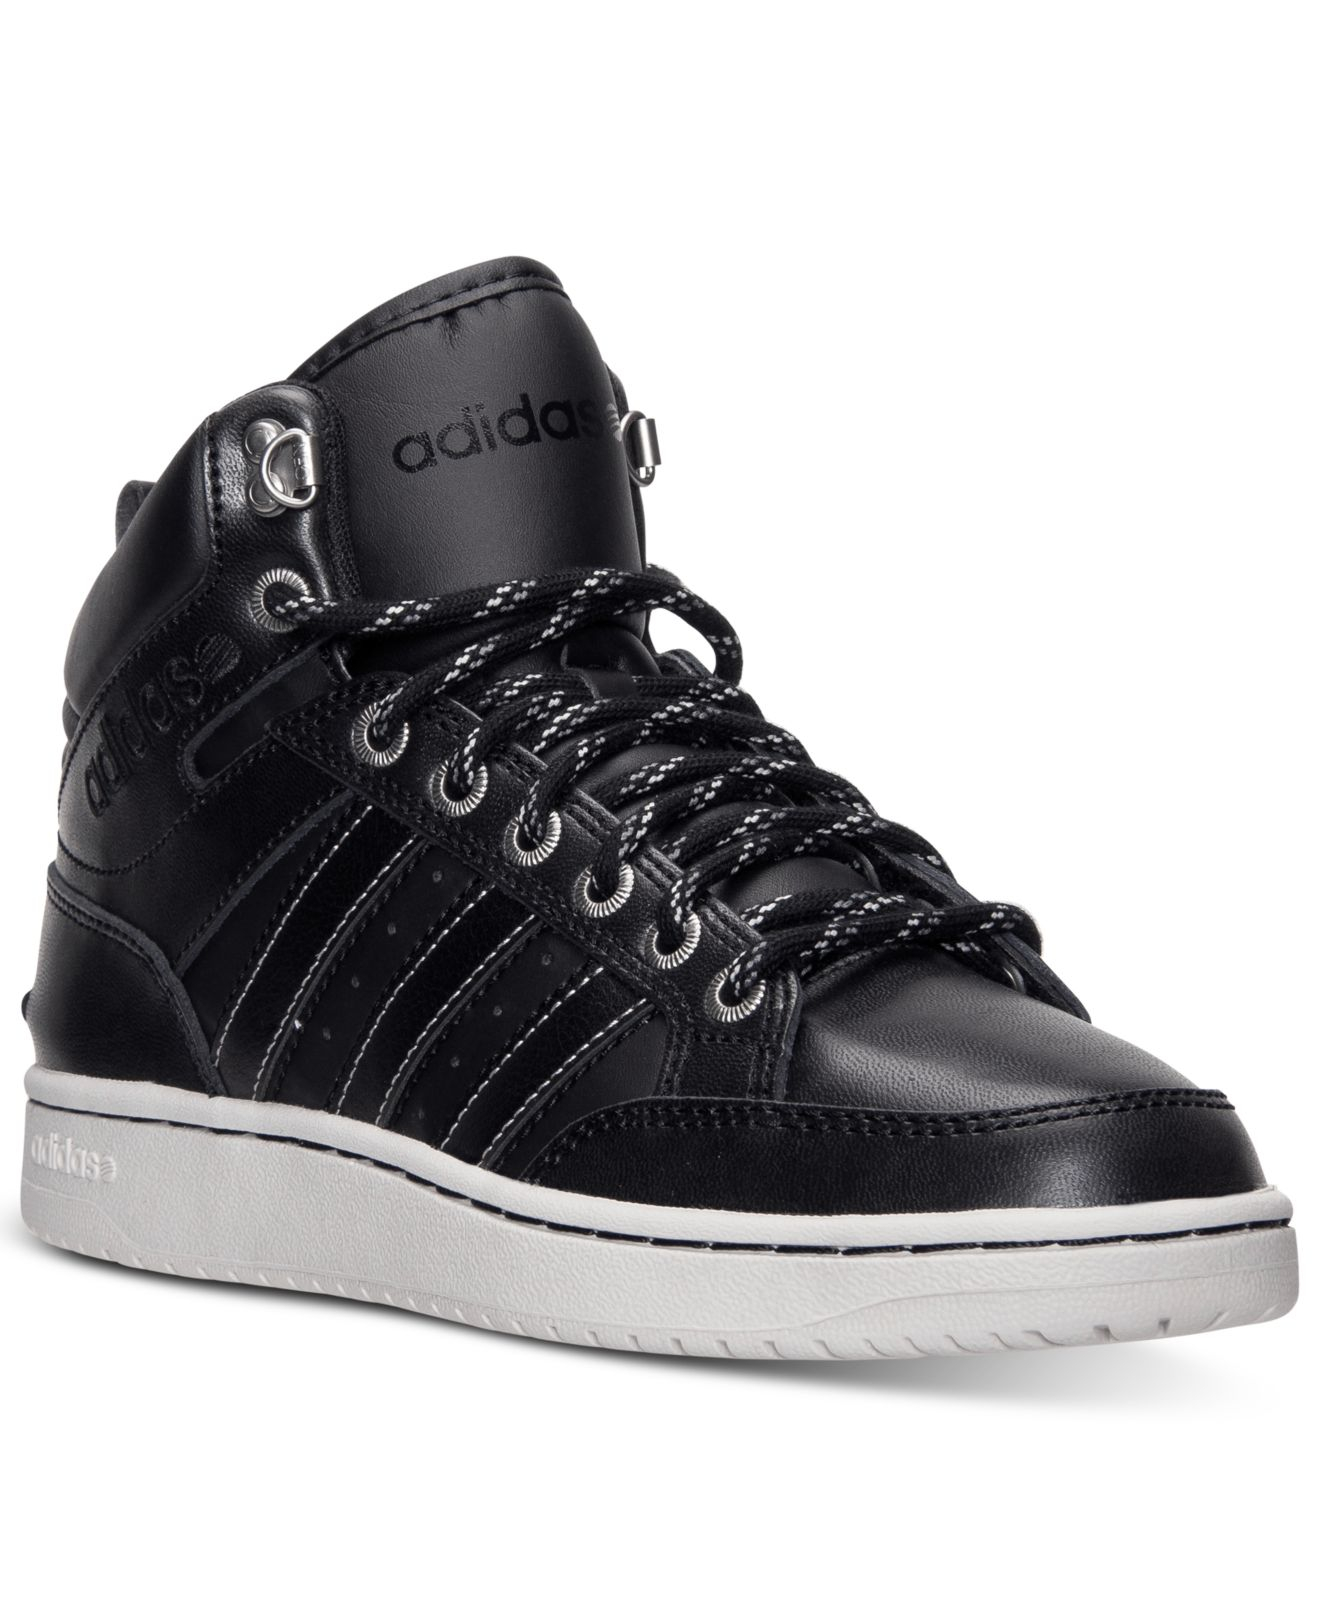 636c21fb5389a germany adidas neo hoops premium leather 77d8d ffd62